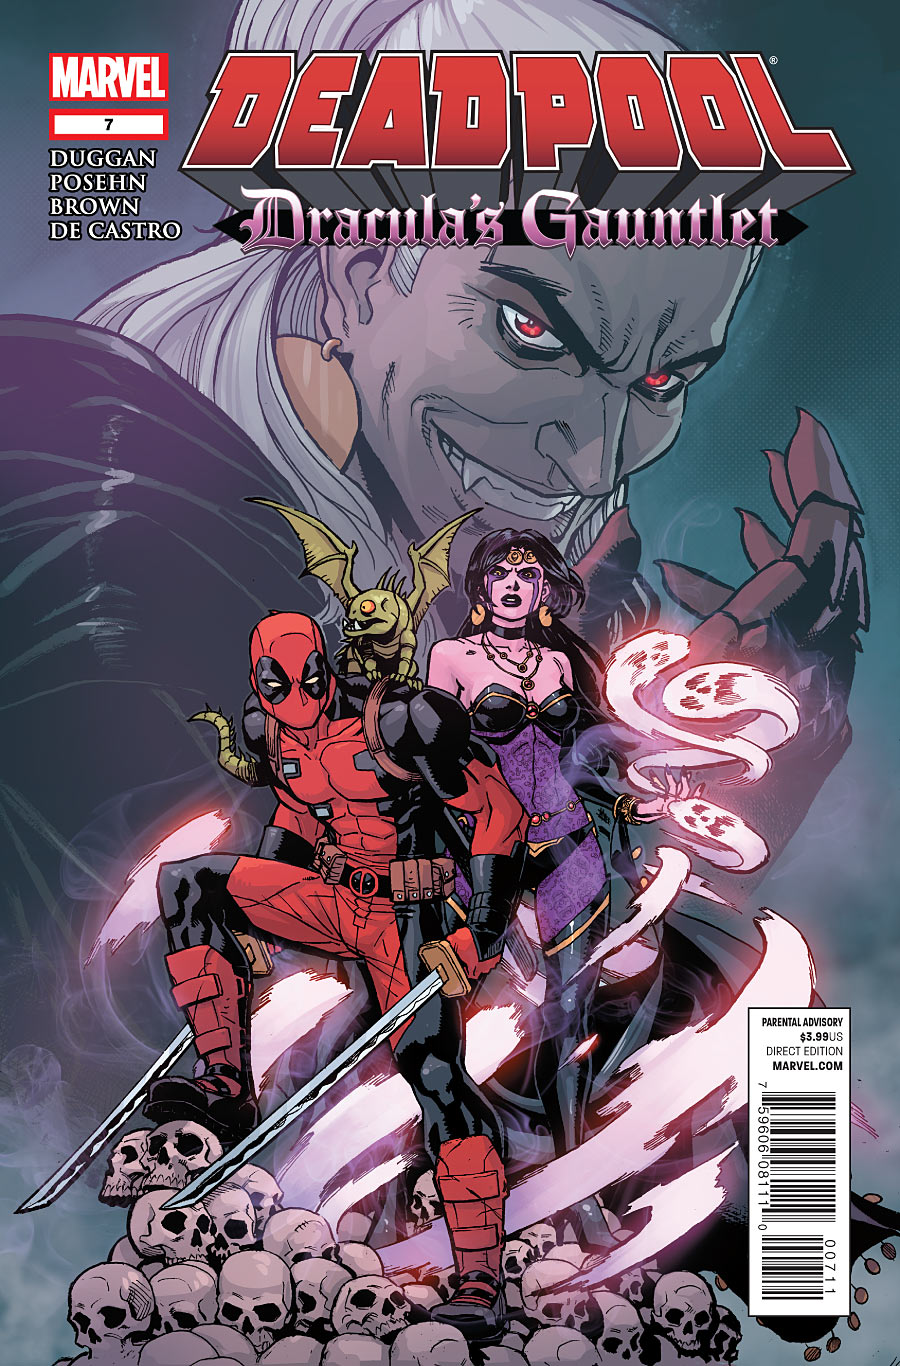 Deadpool: Dracula's Gauntlet Vol 1 7